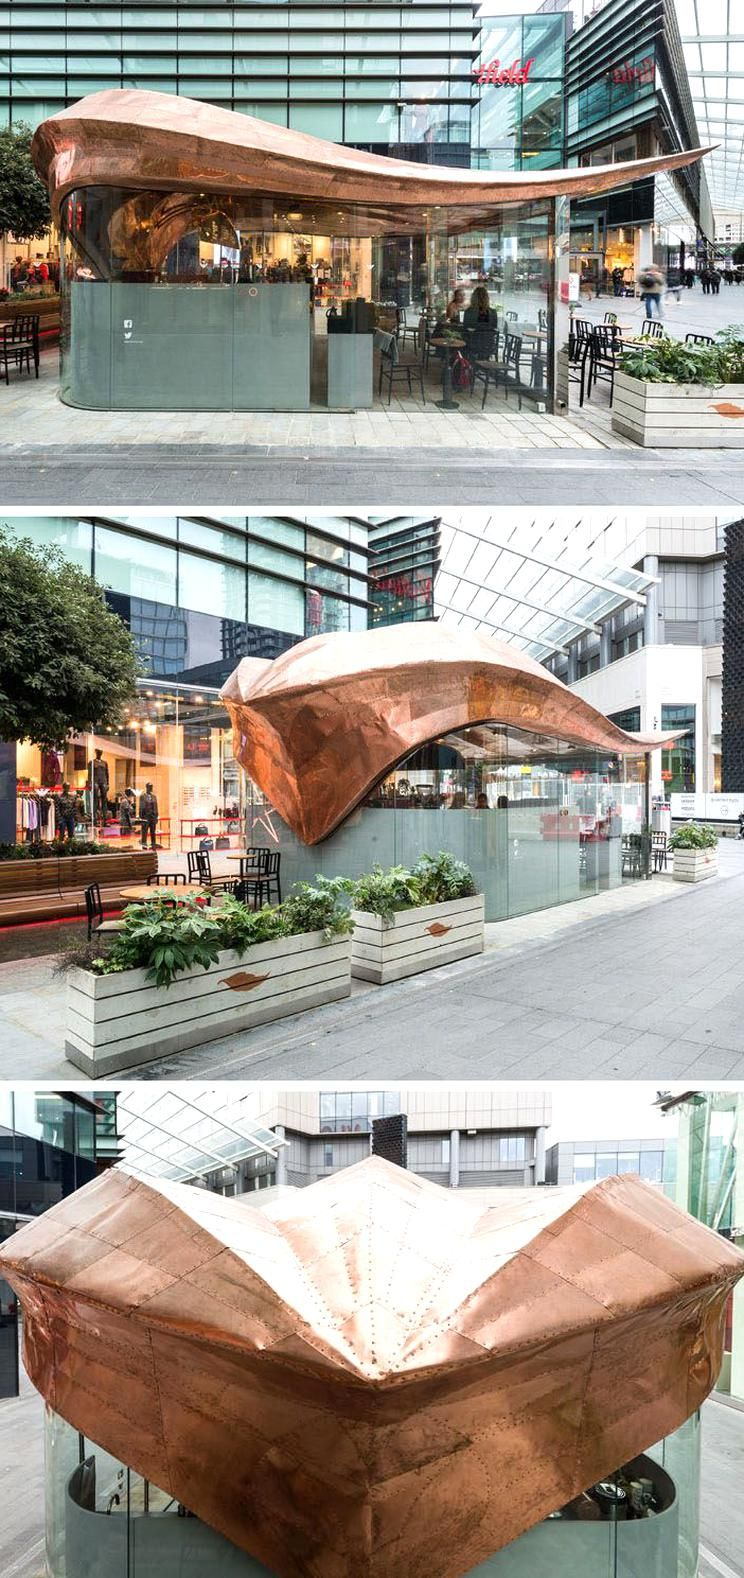 542 Copper Sections Were Used To Create The Curved Roof Of This London Cafe Contemporist In 2020 Roof Design Roof Architecture Architecture